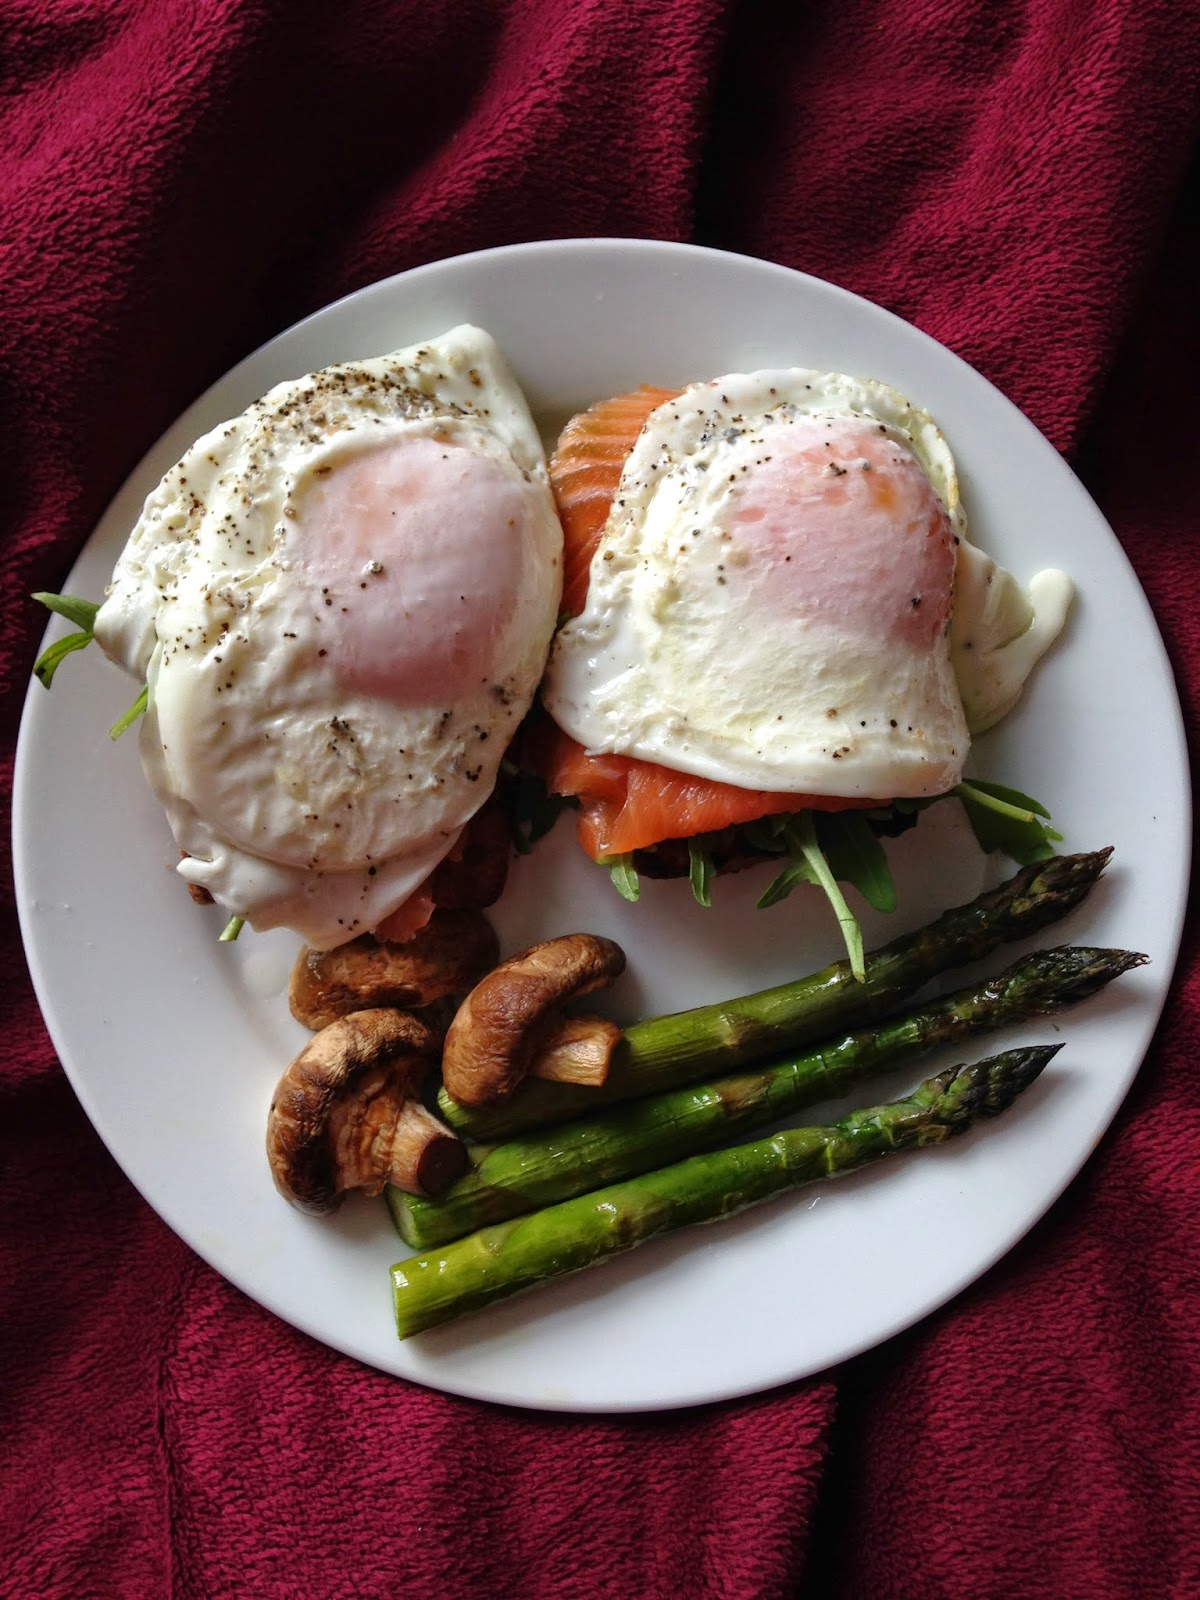 Ds Gluten Free ciabatta roll slightly toasted with smoked tuna, fried egg, mushrooms and steamed asparagus.